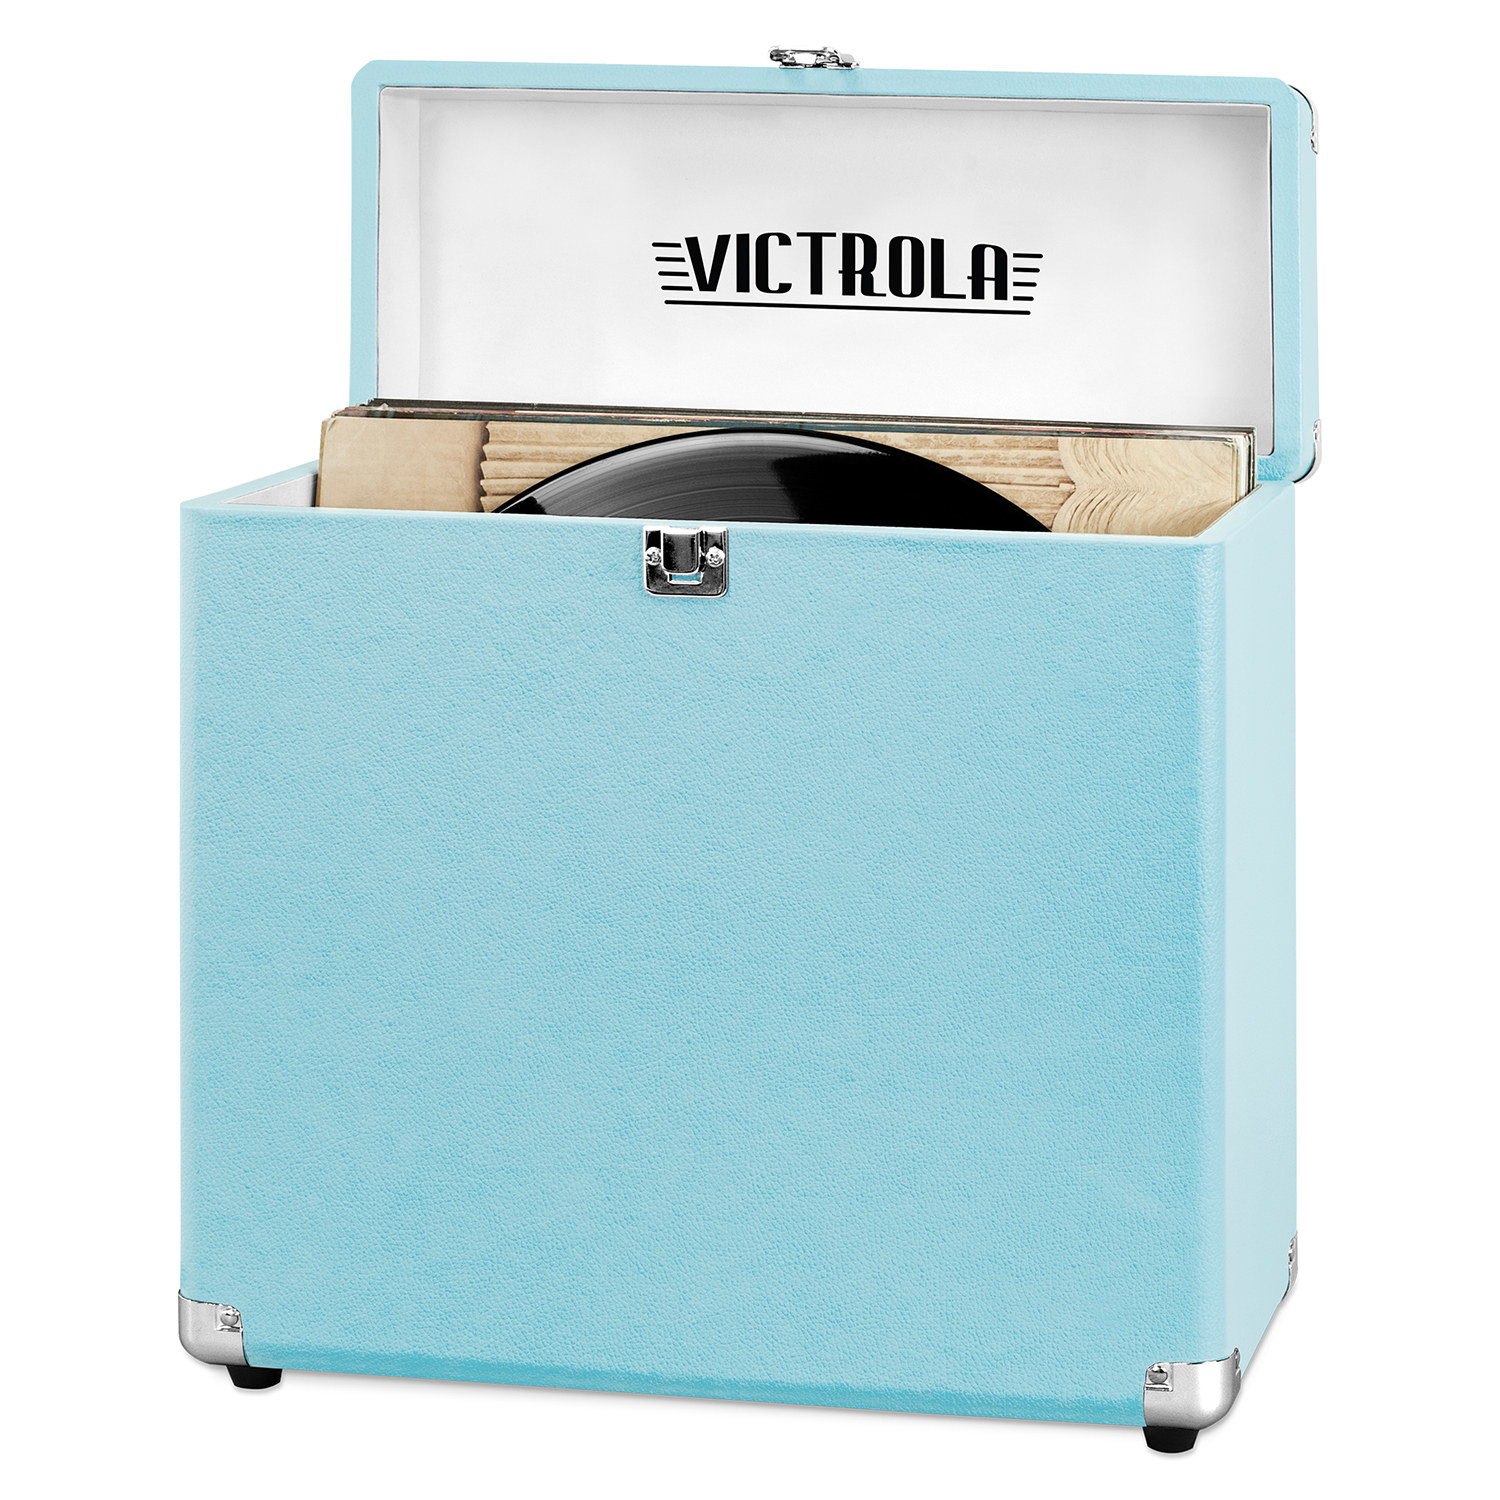 The case, which is shaped like a vinyl album, and has a hinged top, in turquoise